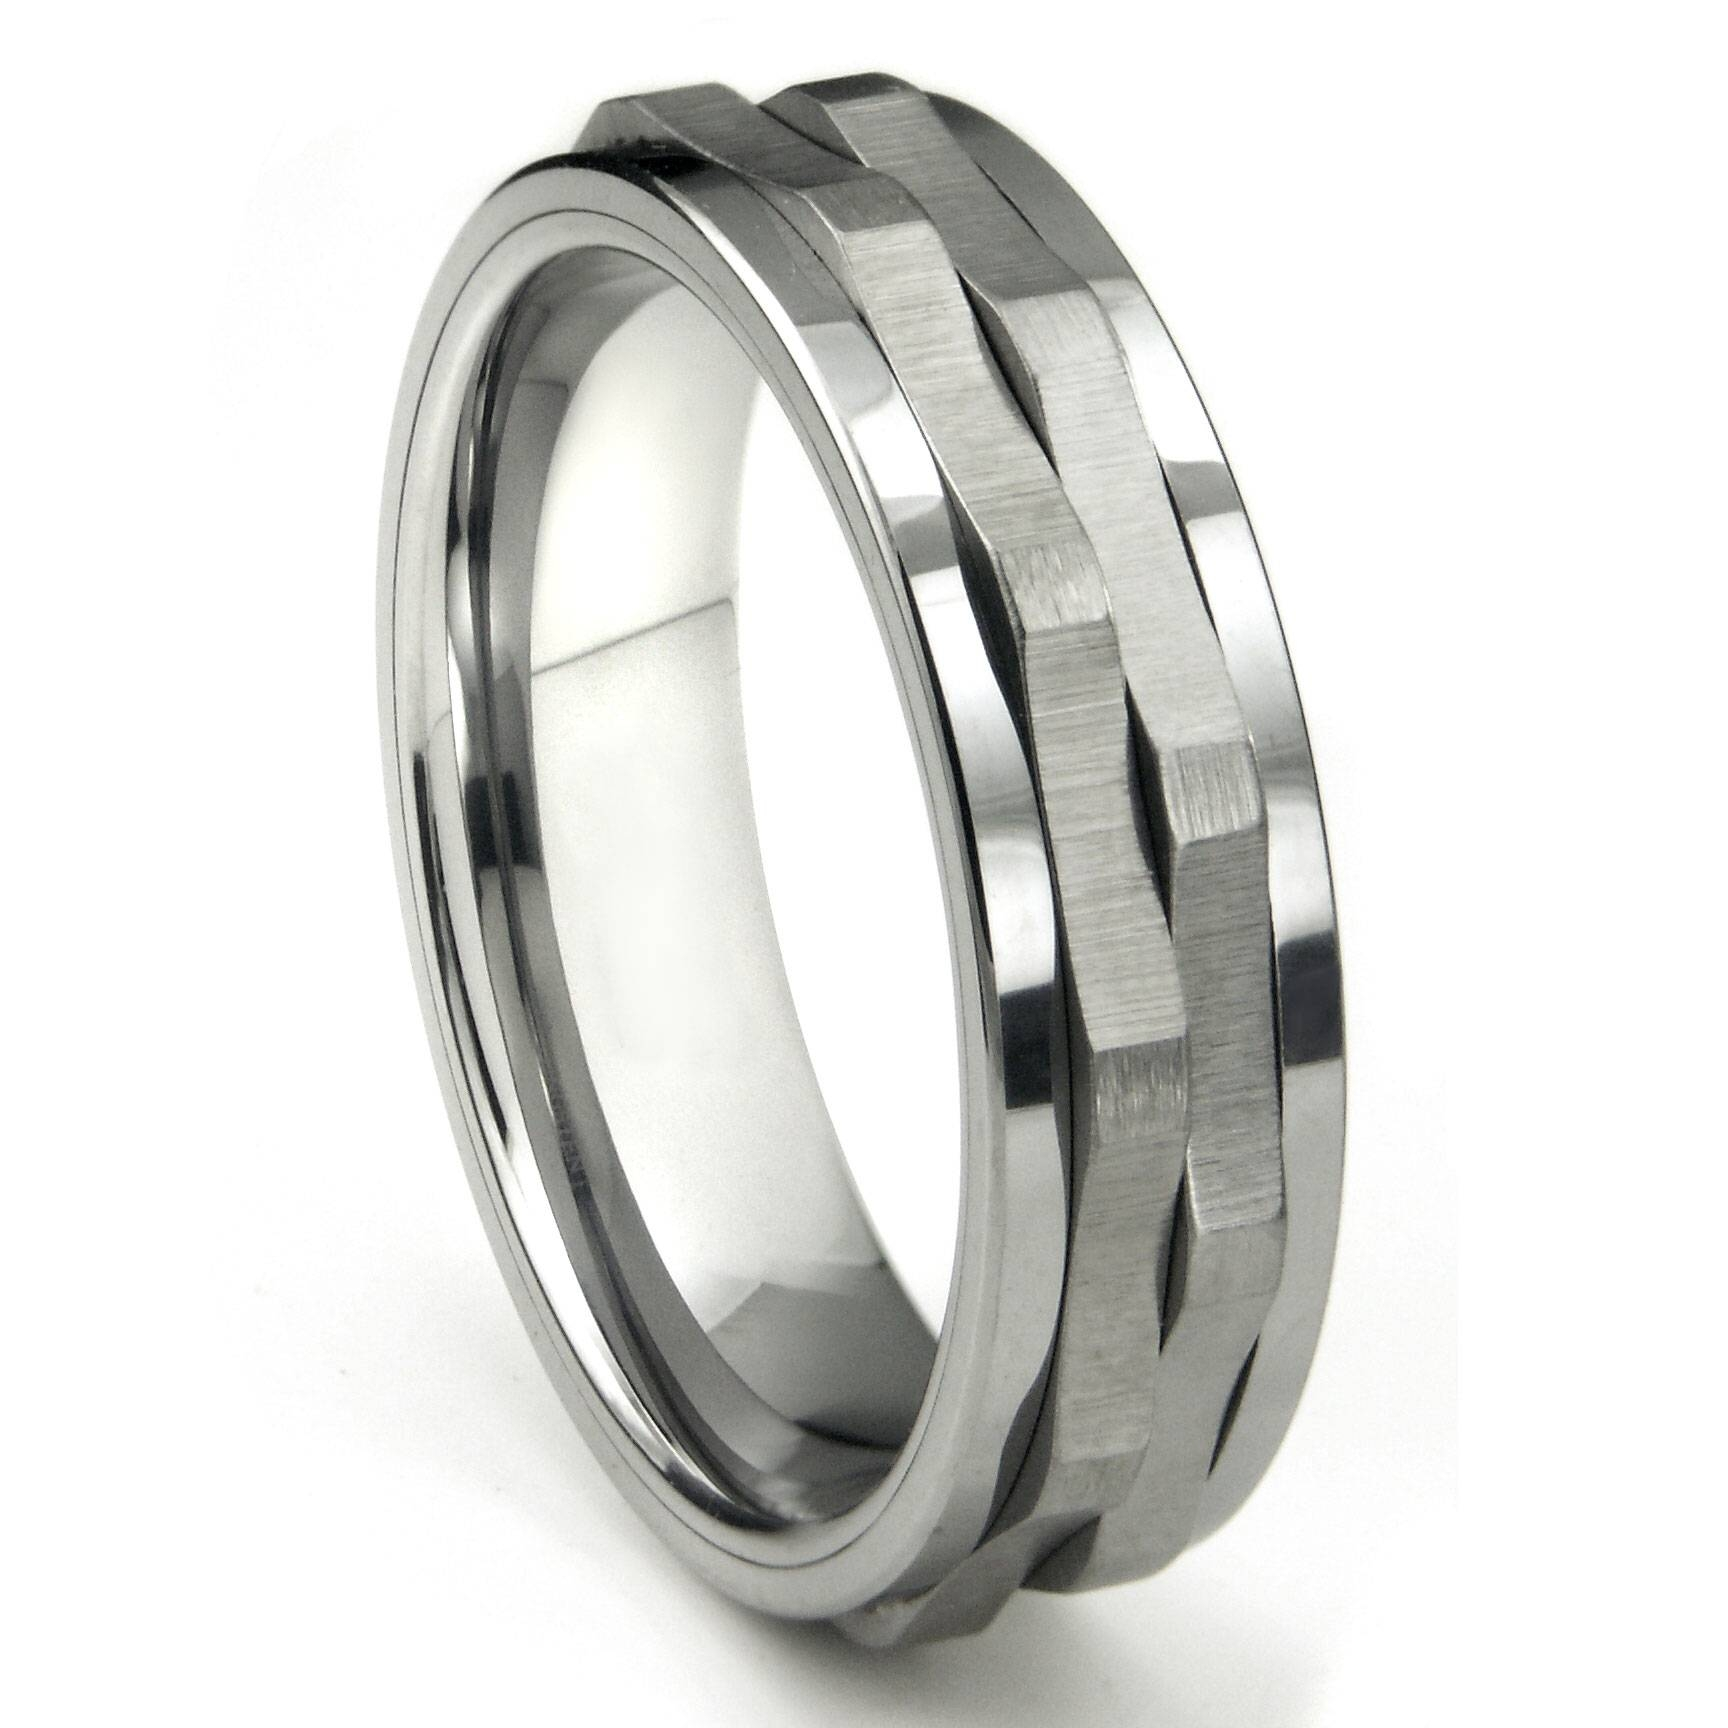 Ninja Star Tungsten Carbide Spinning Wedding Band Ring In Men's Spinner Wedding Bands (View 1 of 15)